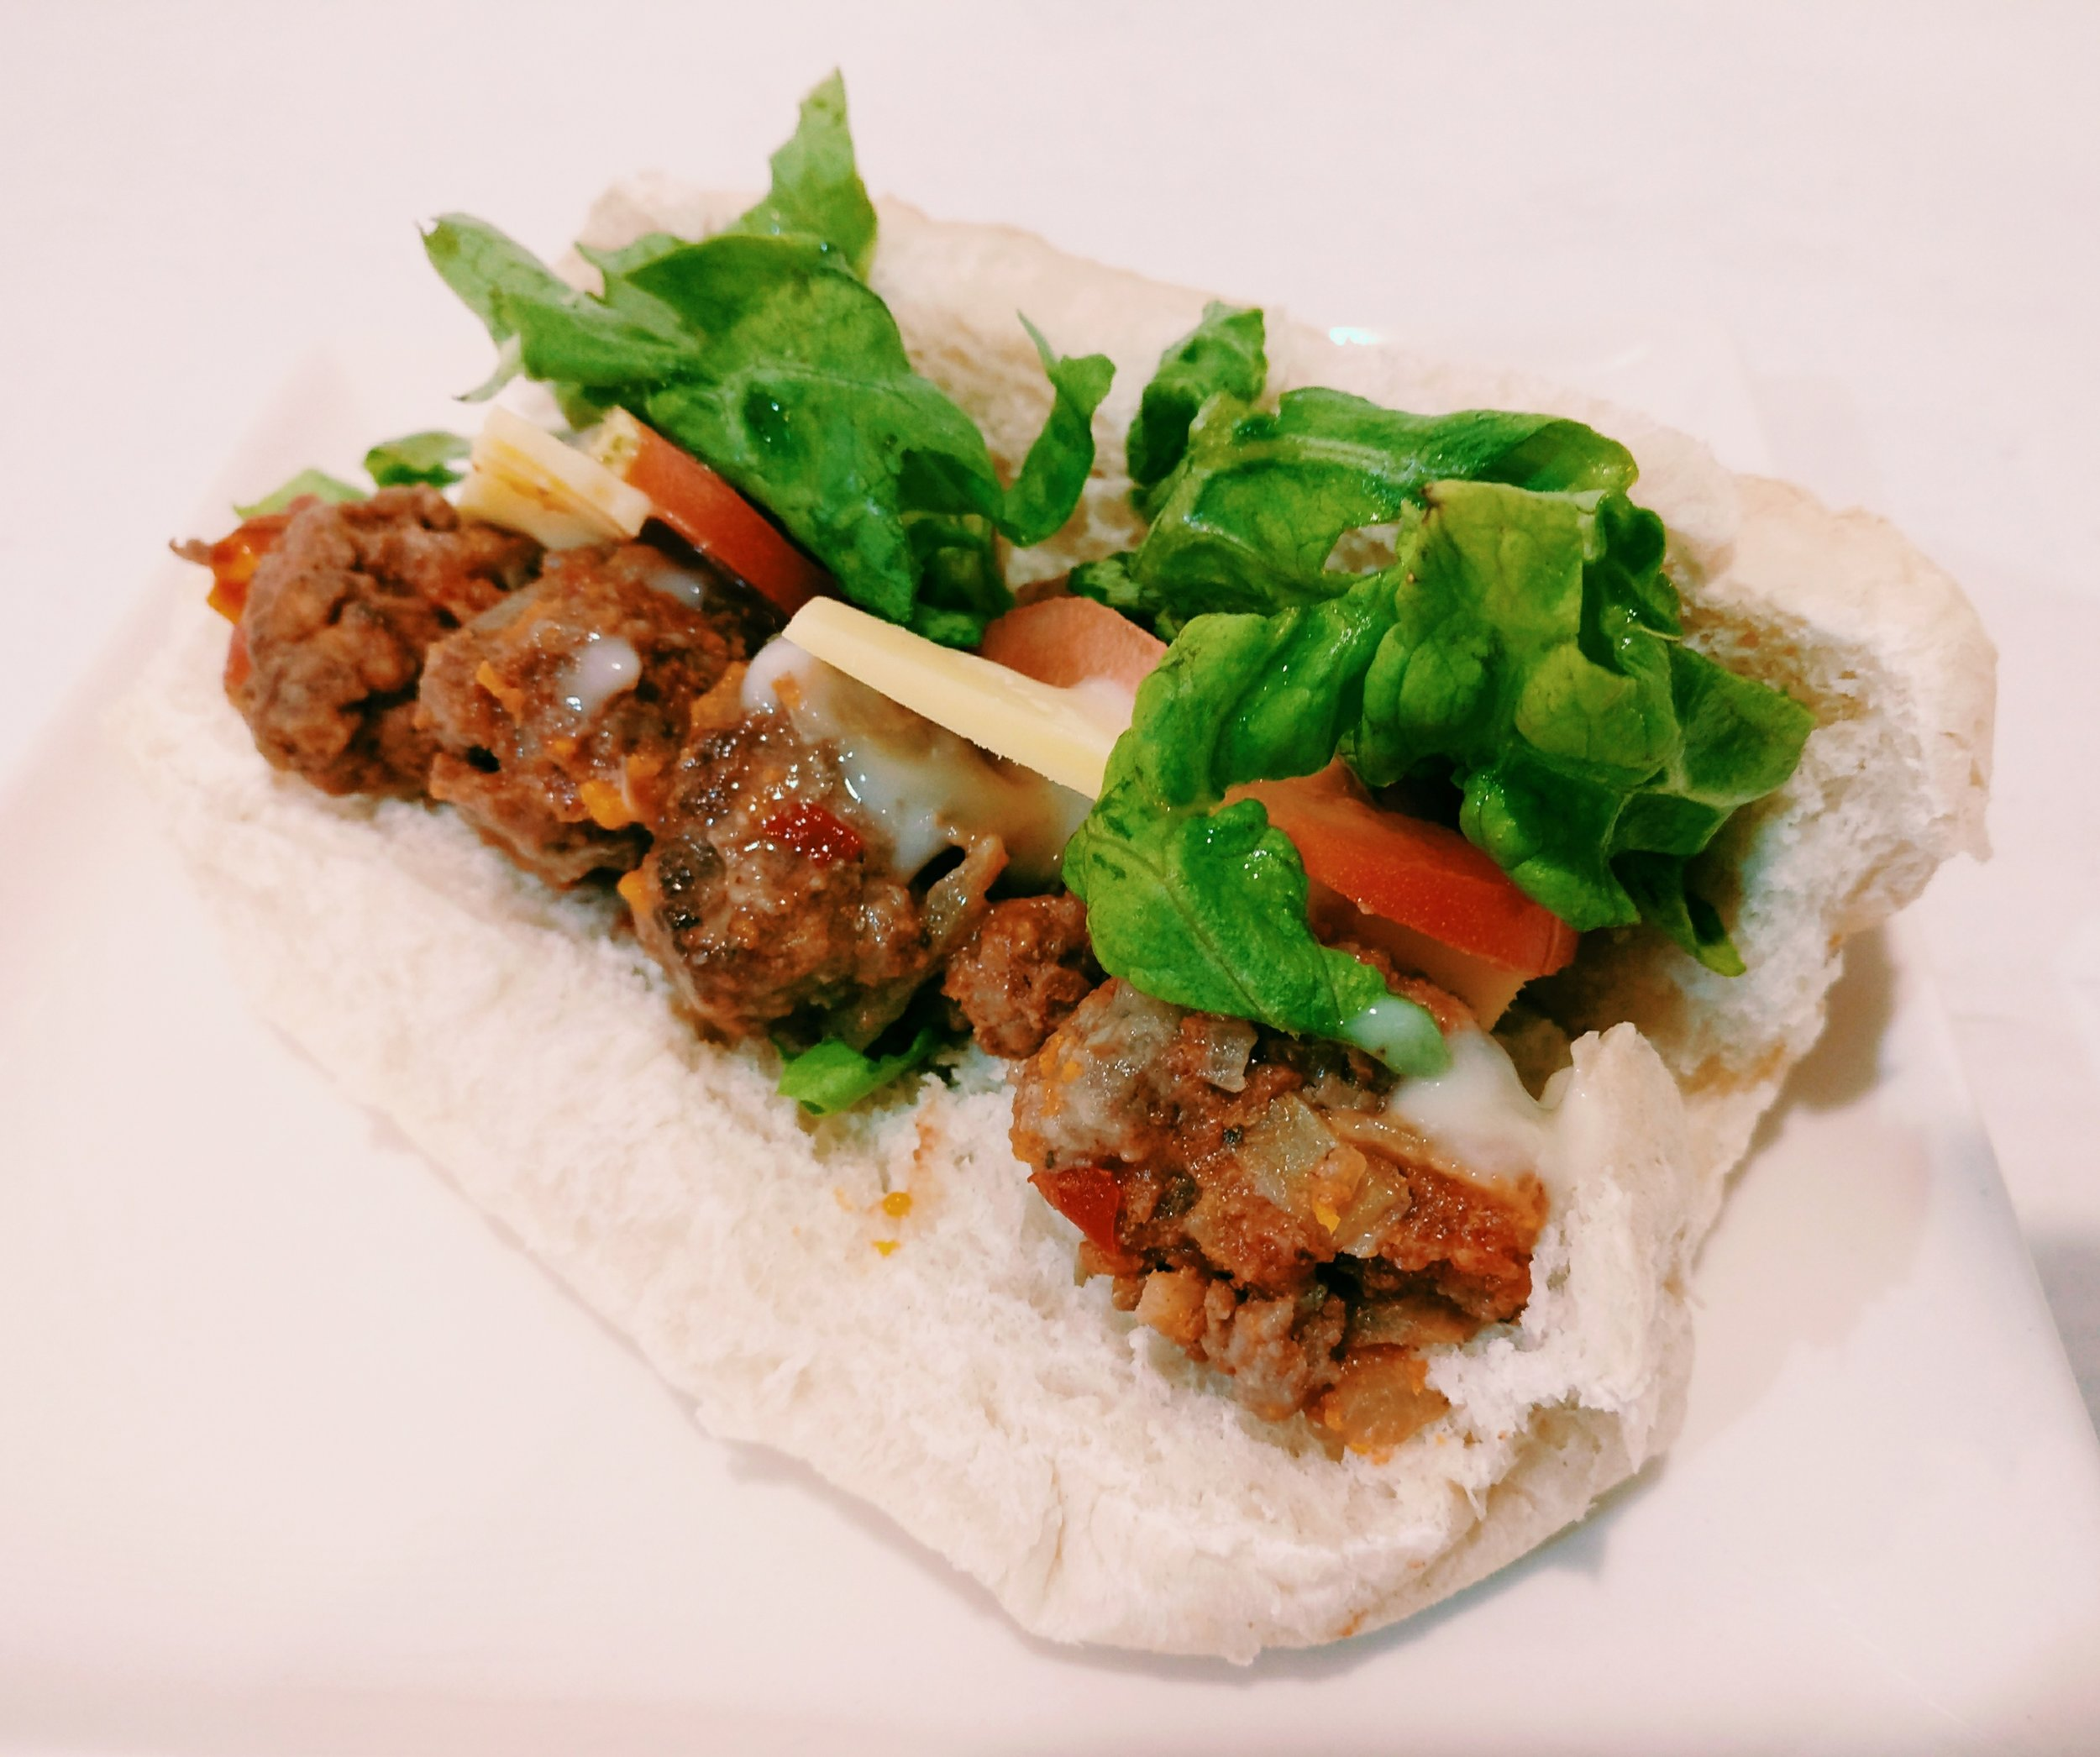 Meatball Subs - Ingredients500g Beef Mince1 Onion – diced1 Maggi Mushroom or Onion Soup Mix1 Egg1T Sweet Chilli Sauce (optional)1T Worcestershire Sauce (optional)1T Soy Sauce (optional)1T Tomato Sauce (optional)1t Mixed Herbs1 Tin – Diced TomatoesMethod1. In a large bowl, combine the mince, onion, soup mix, egg, tomato sauce, sweet chilli sauce, worcestershire sauce, soy sauce and mixed herbs2. Measure out tablespoon amounts of the mince mixture and roll into balls. Leave to set in the fridge for at least 1 hour3. Brown the meatballs in a large frying pan and when cooked though, add the tin of diced tomatoes and simmer for 2-3 minutes4. The meatballs can be served hot or cold on long rolls, topped with your favourite salad ingredients